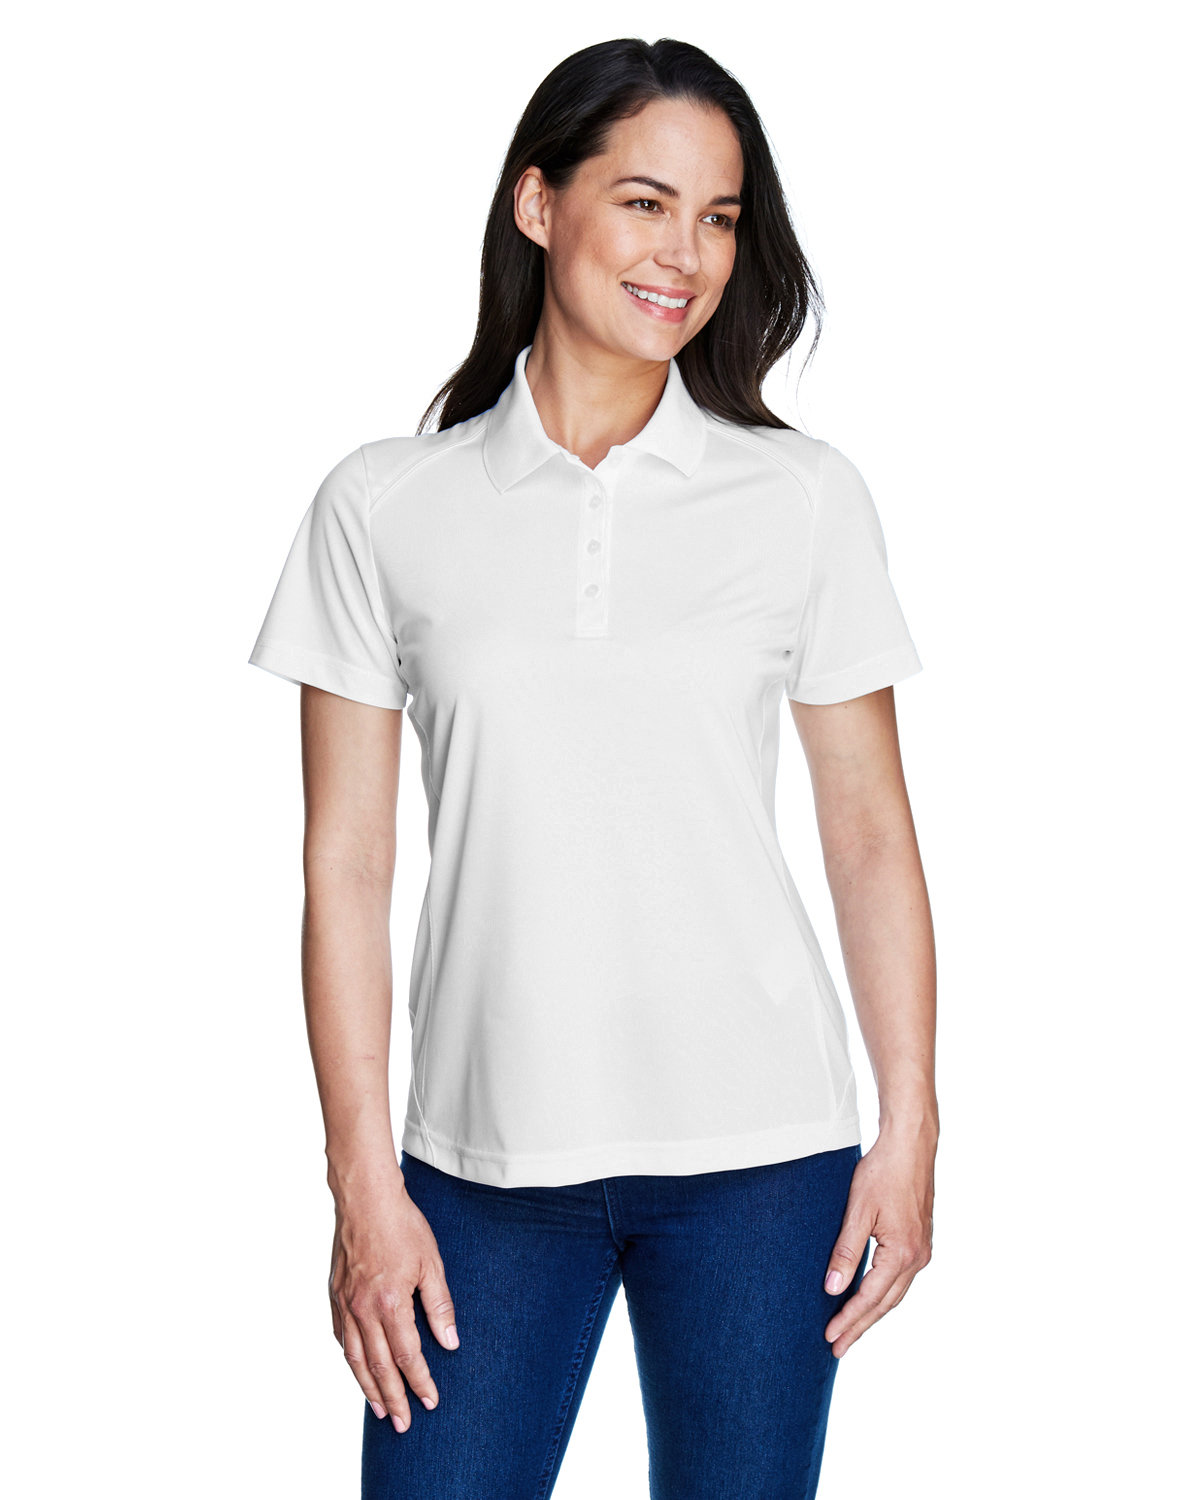 Medium Extreme Youth Snag Protection Polo Shirt Forest 65108